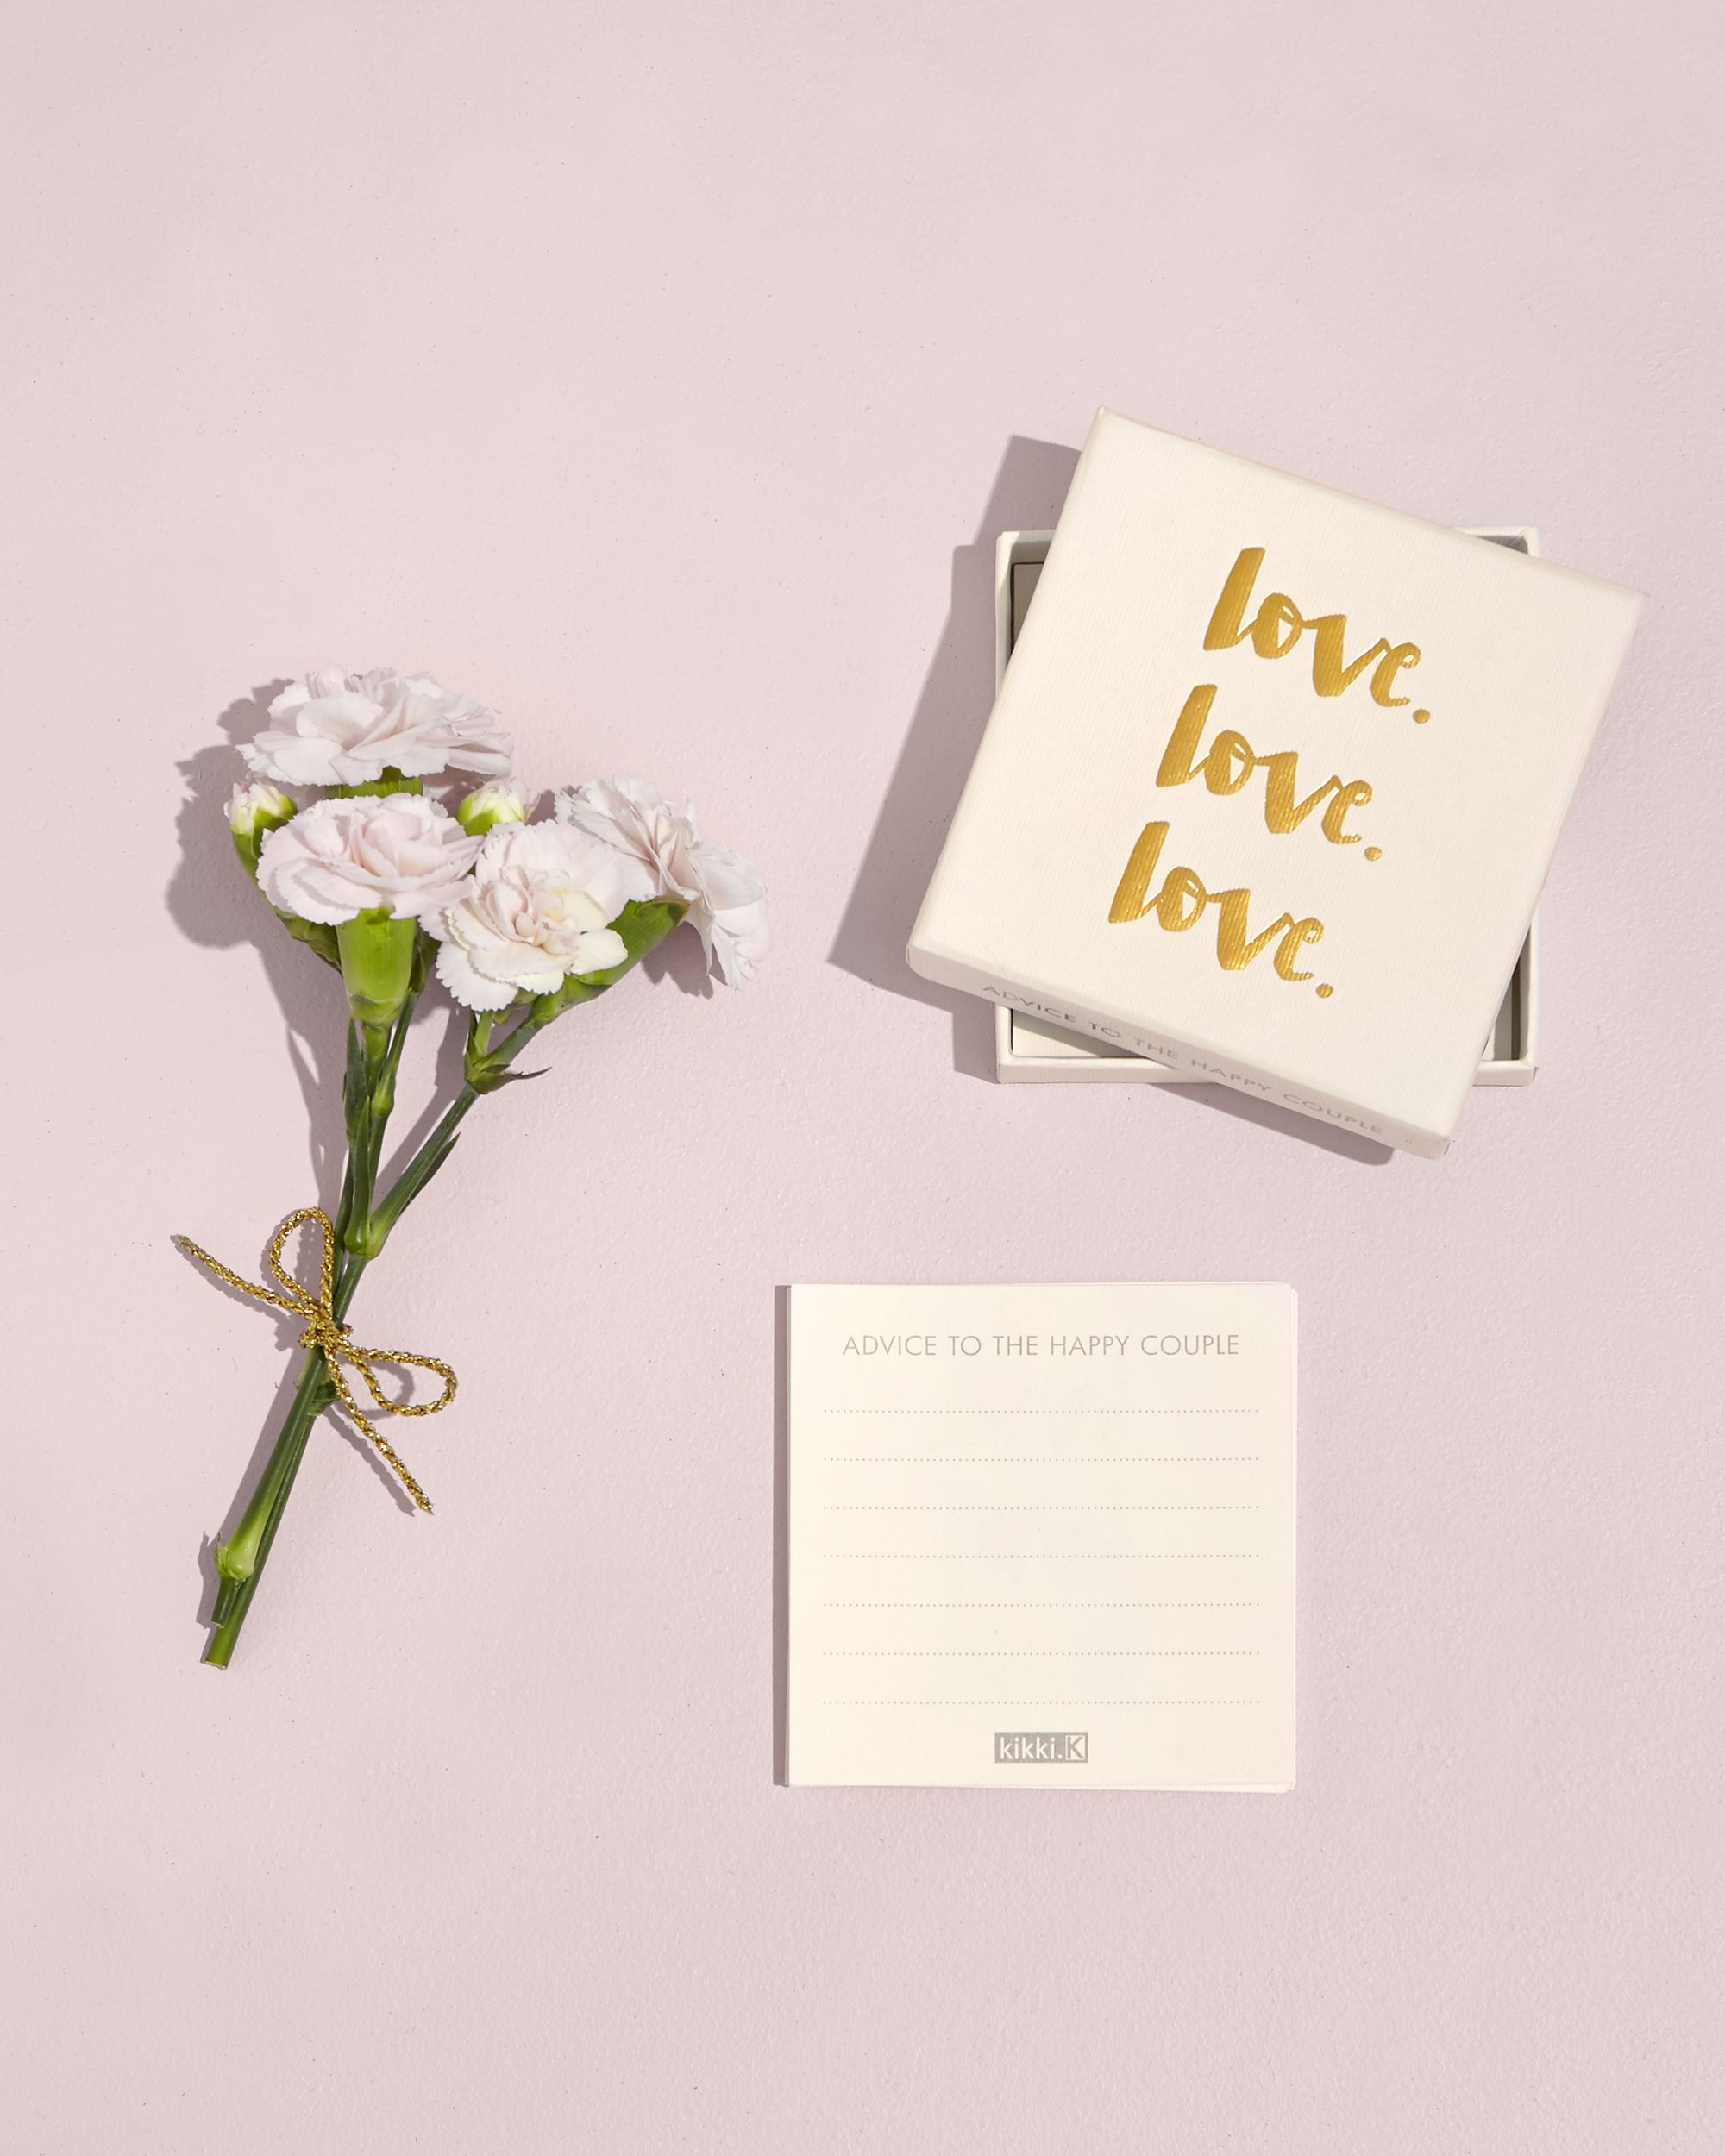 This Advice To The Hy Question Cards Set Makes A Great Wedding Guest Book Idea